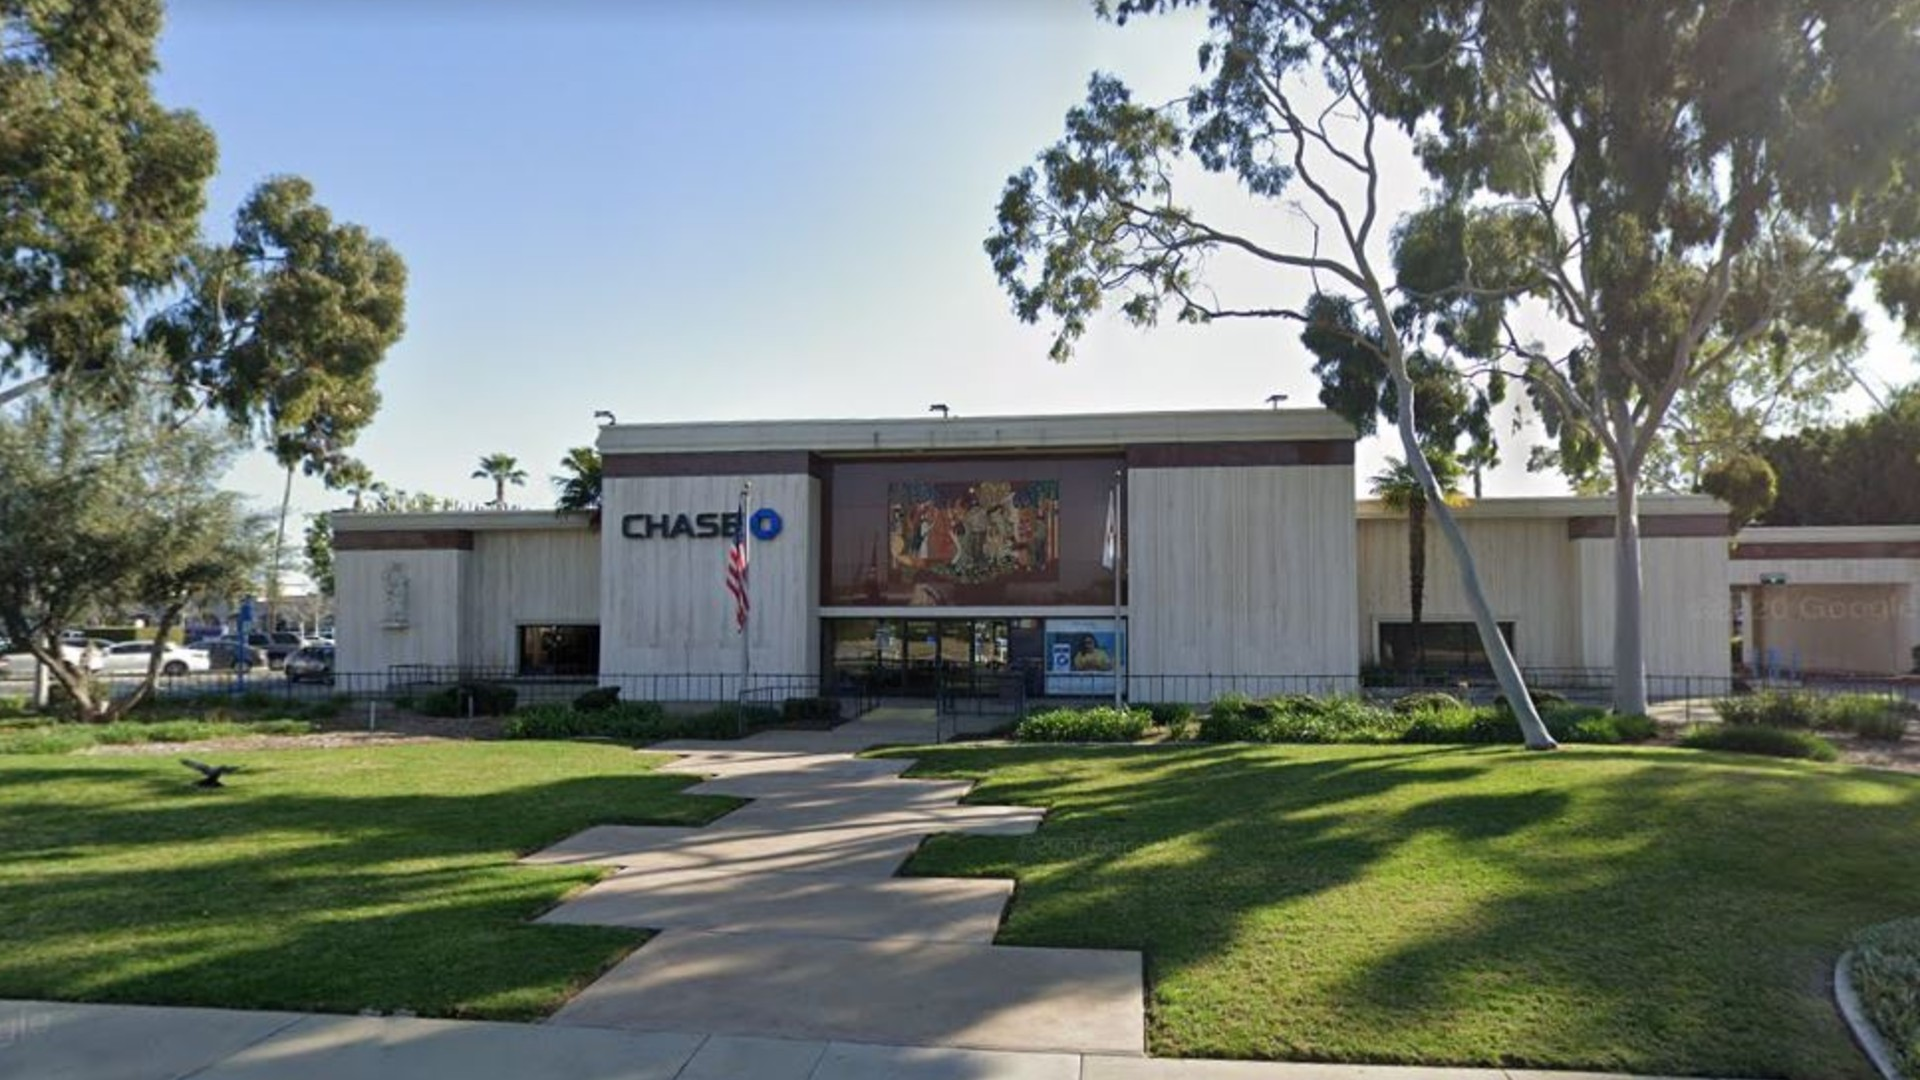 Chase Bank, 15128 E, Rosecrans Ave. in La Mirada, as pictured in an Google Street View image.